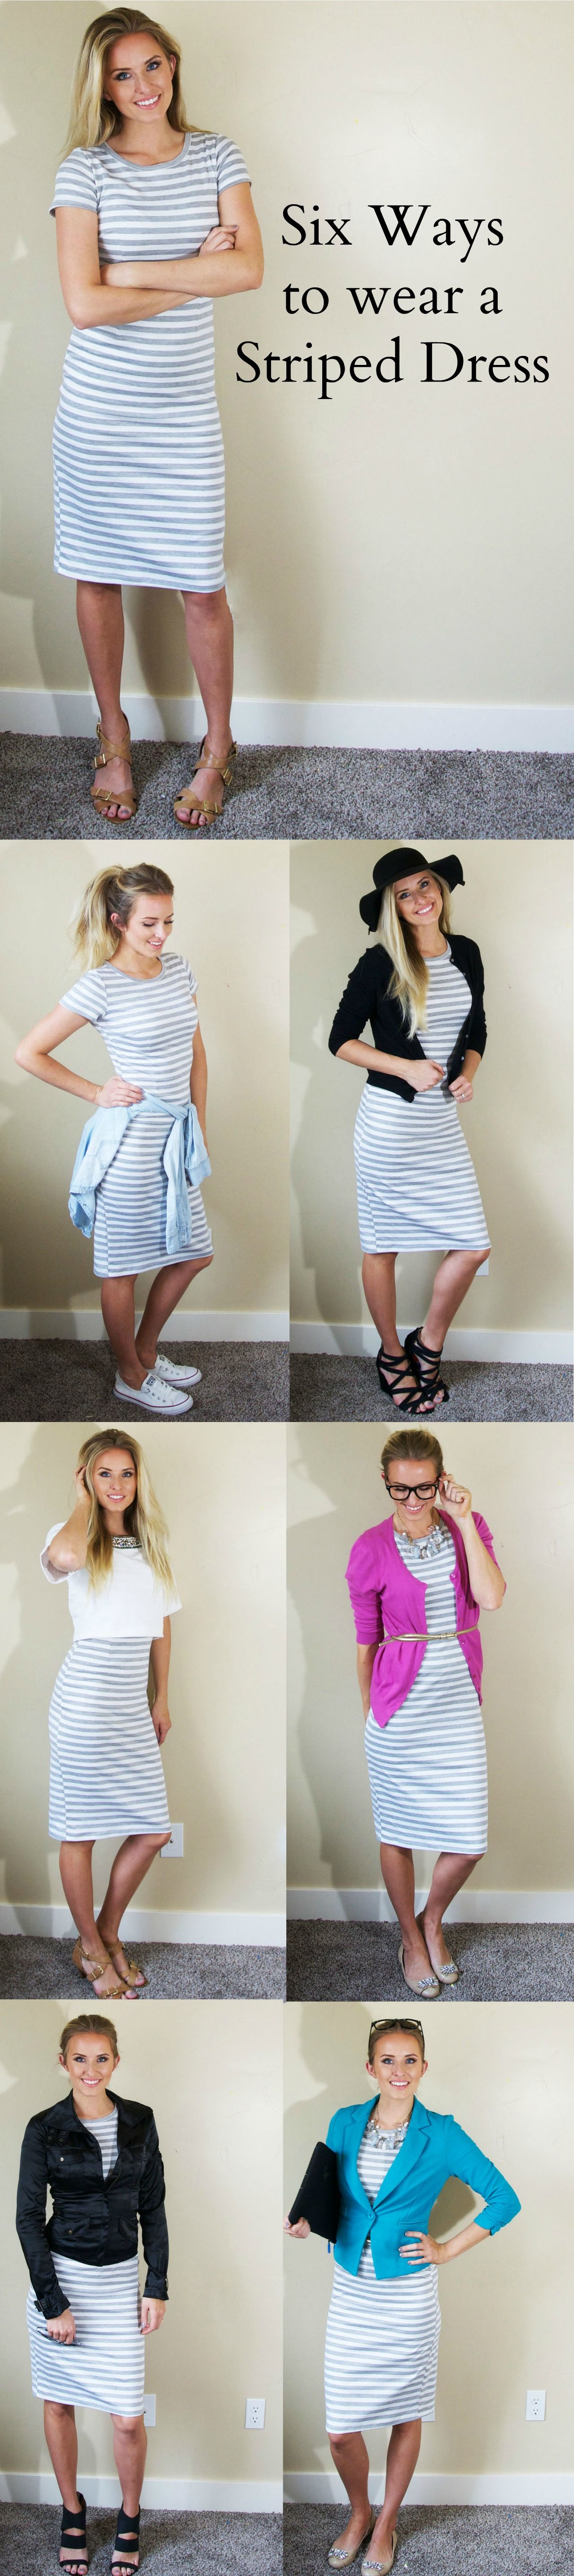 The dress how to see it both ways - This Striped Jersey Dress So Many Cute Ways To Wear It